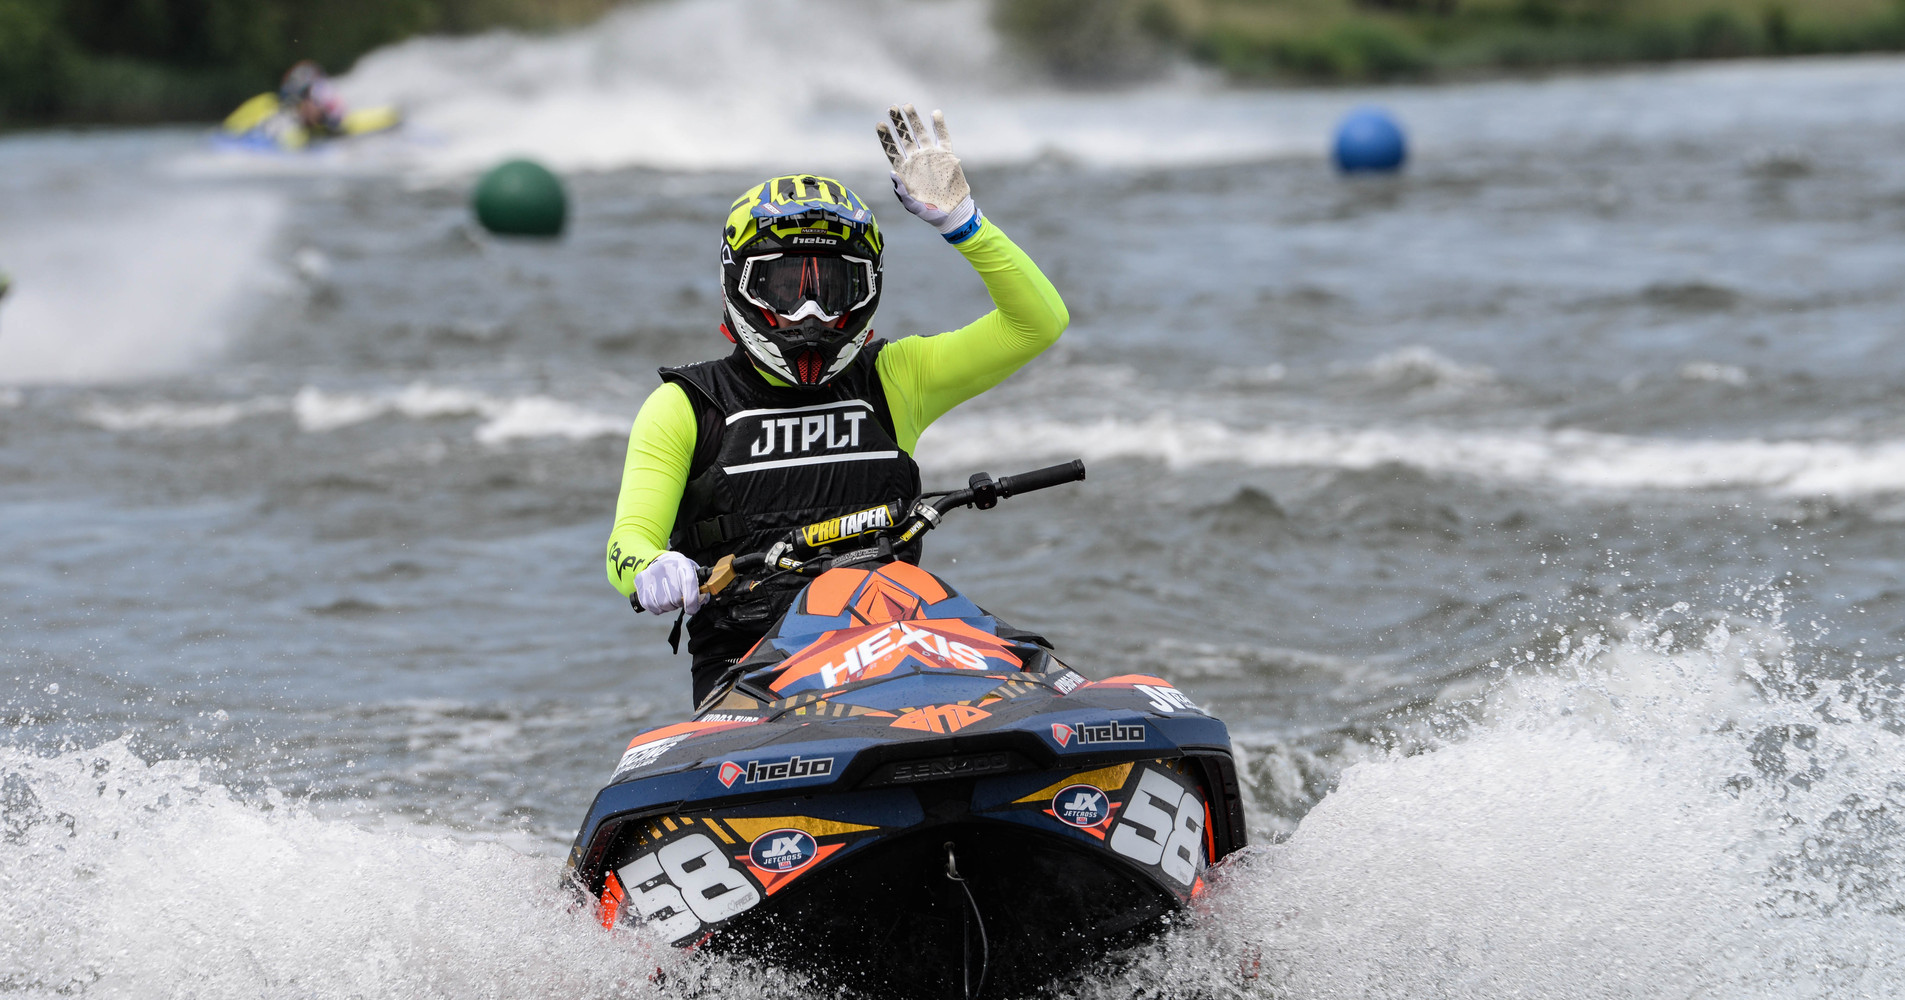 First victory on the Jetcross in the Pro-Am Sport class for Tom Baudoin, EKD Graphic owner